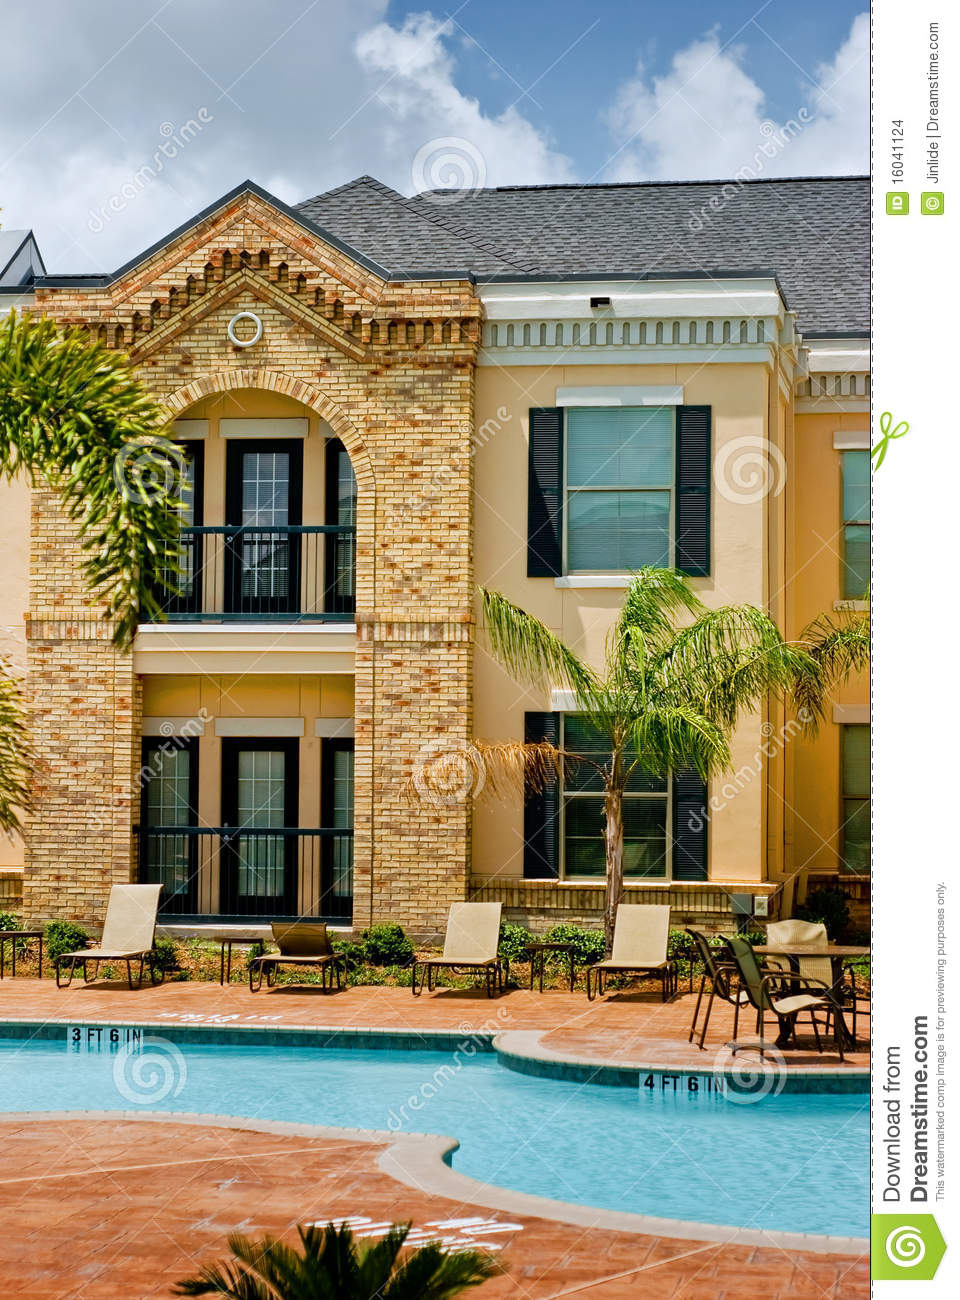 Building With A Pool Stock Images Image 16041124